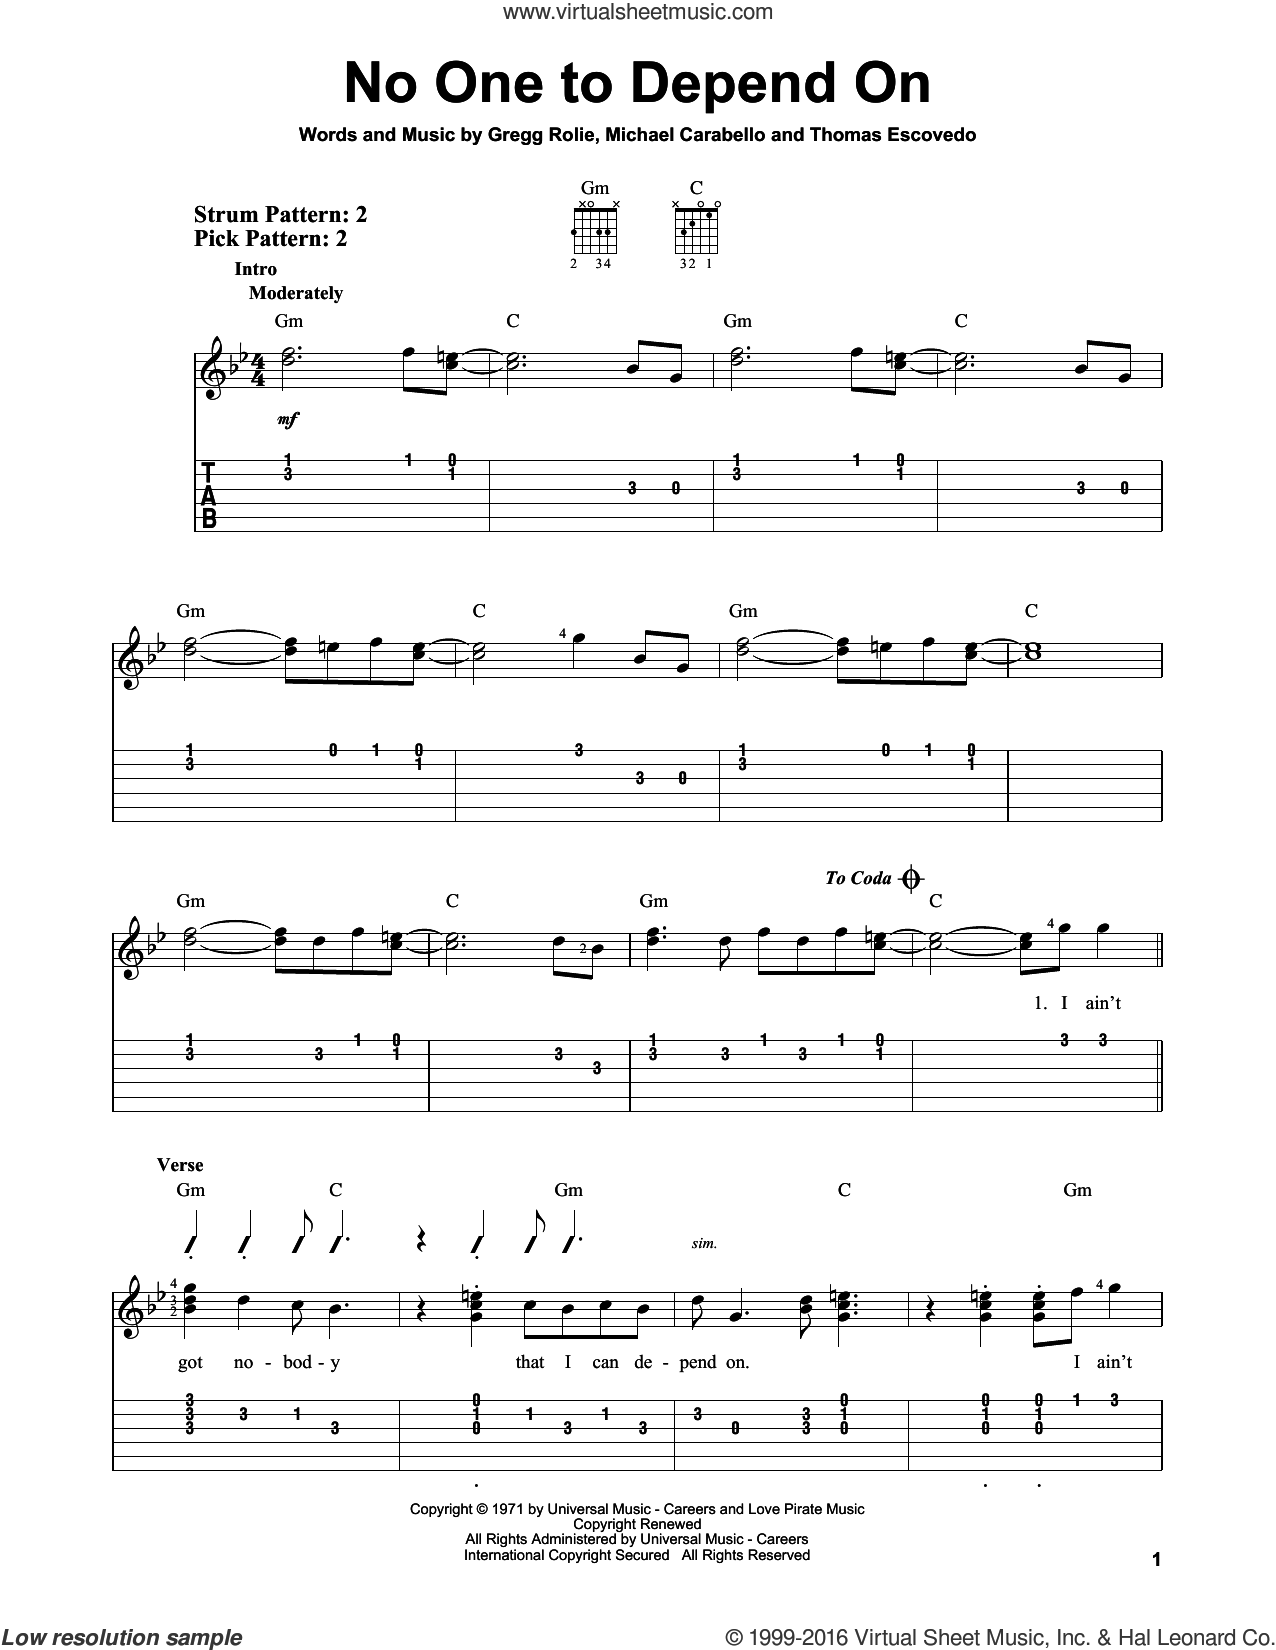 No One To Depend On sheet music for guitar solo (easy tablature) by Carlos Santana, Gregg Rolie, Michael Carabello and Thomas Escovedo, easy guitar (easy tablature)